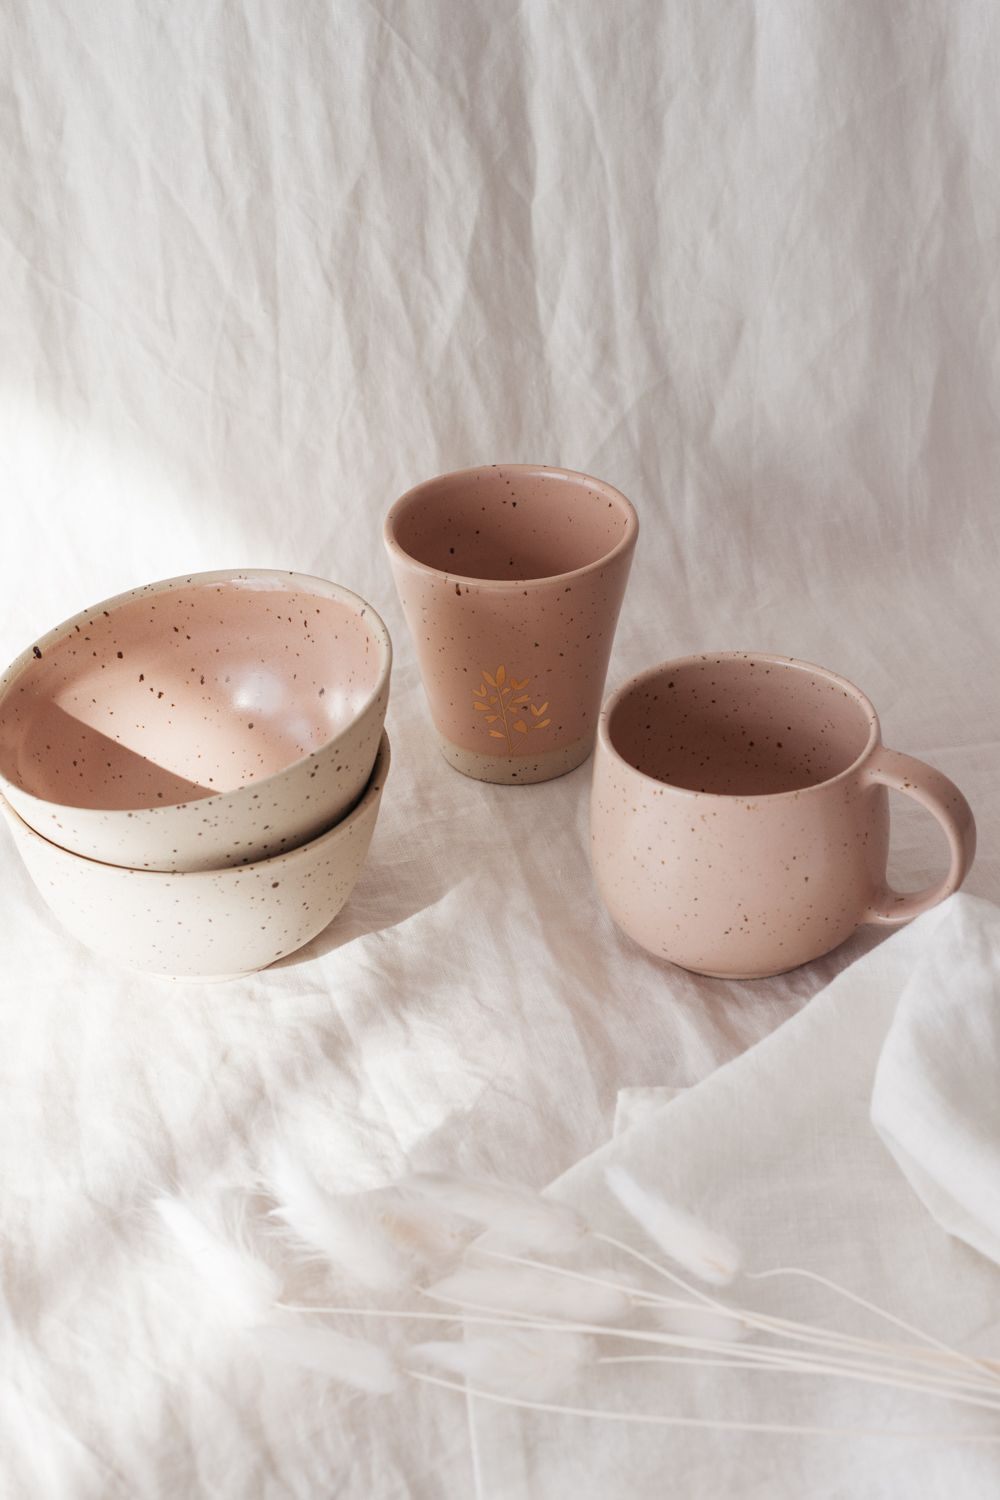 Marinski Handmade Ceramic Bowl - Blush